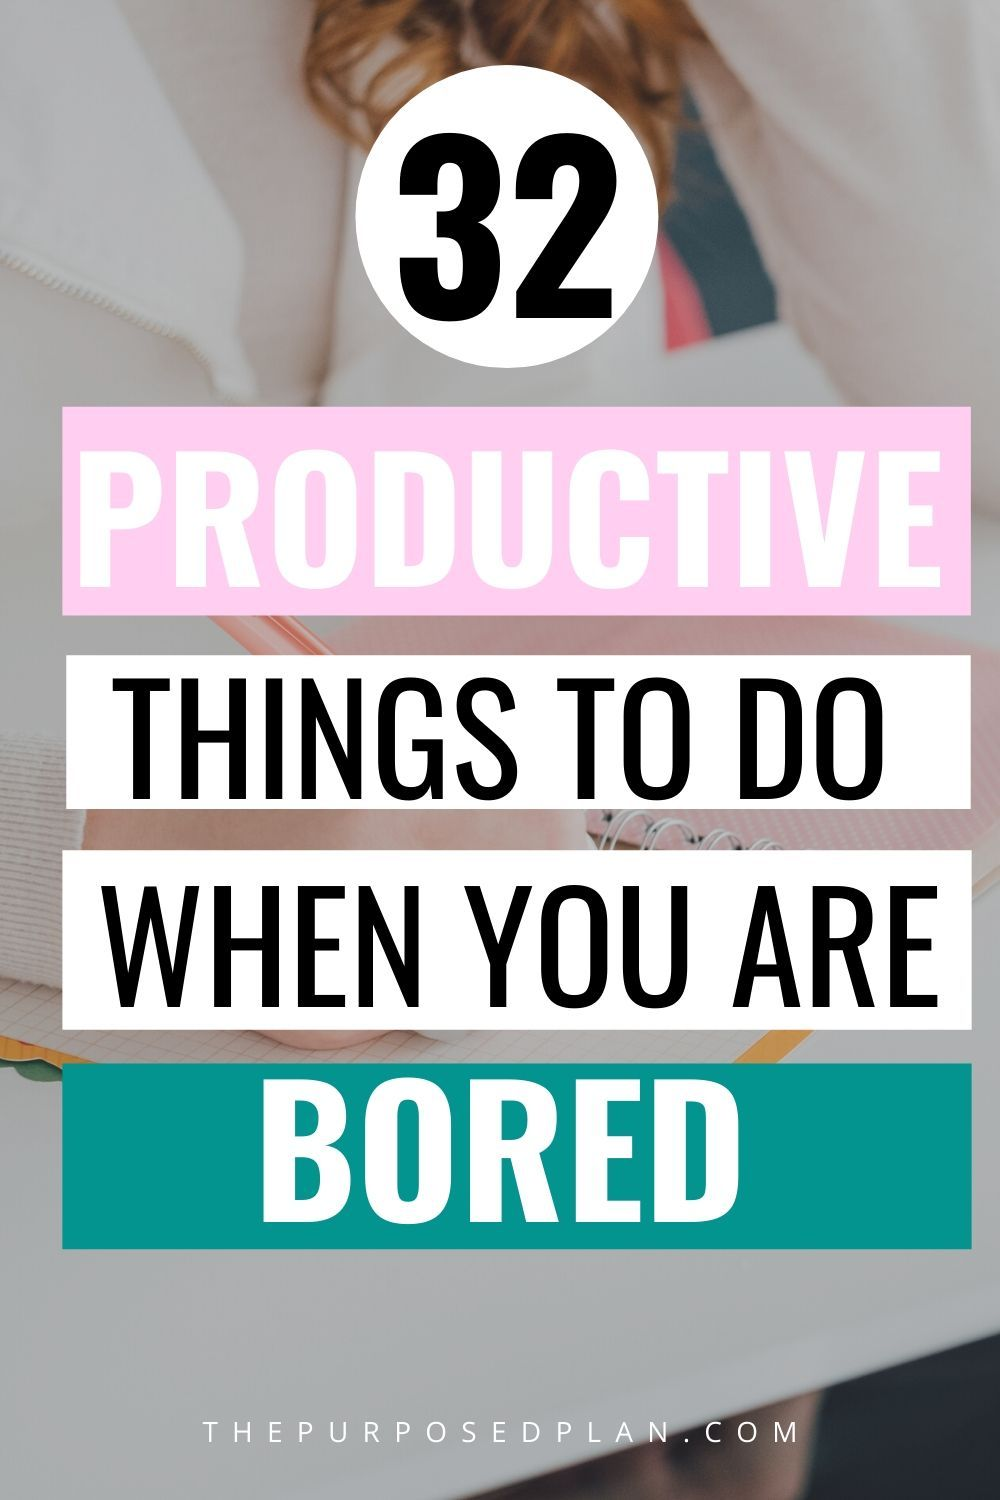 PRODUCTIVE THINGS TO DO WHEN BORED